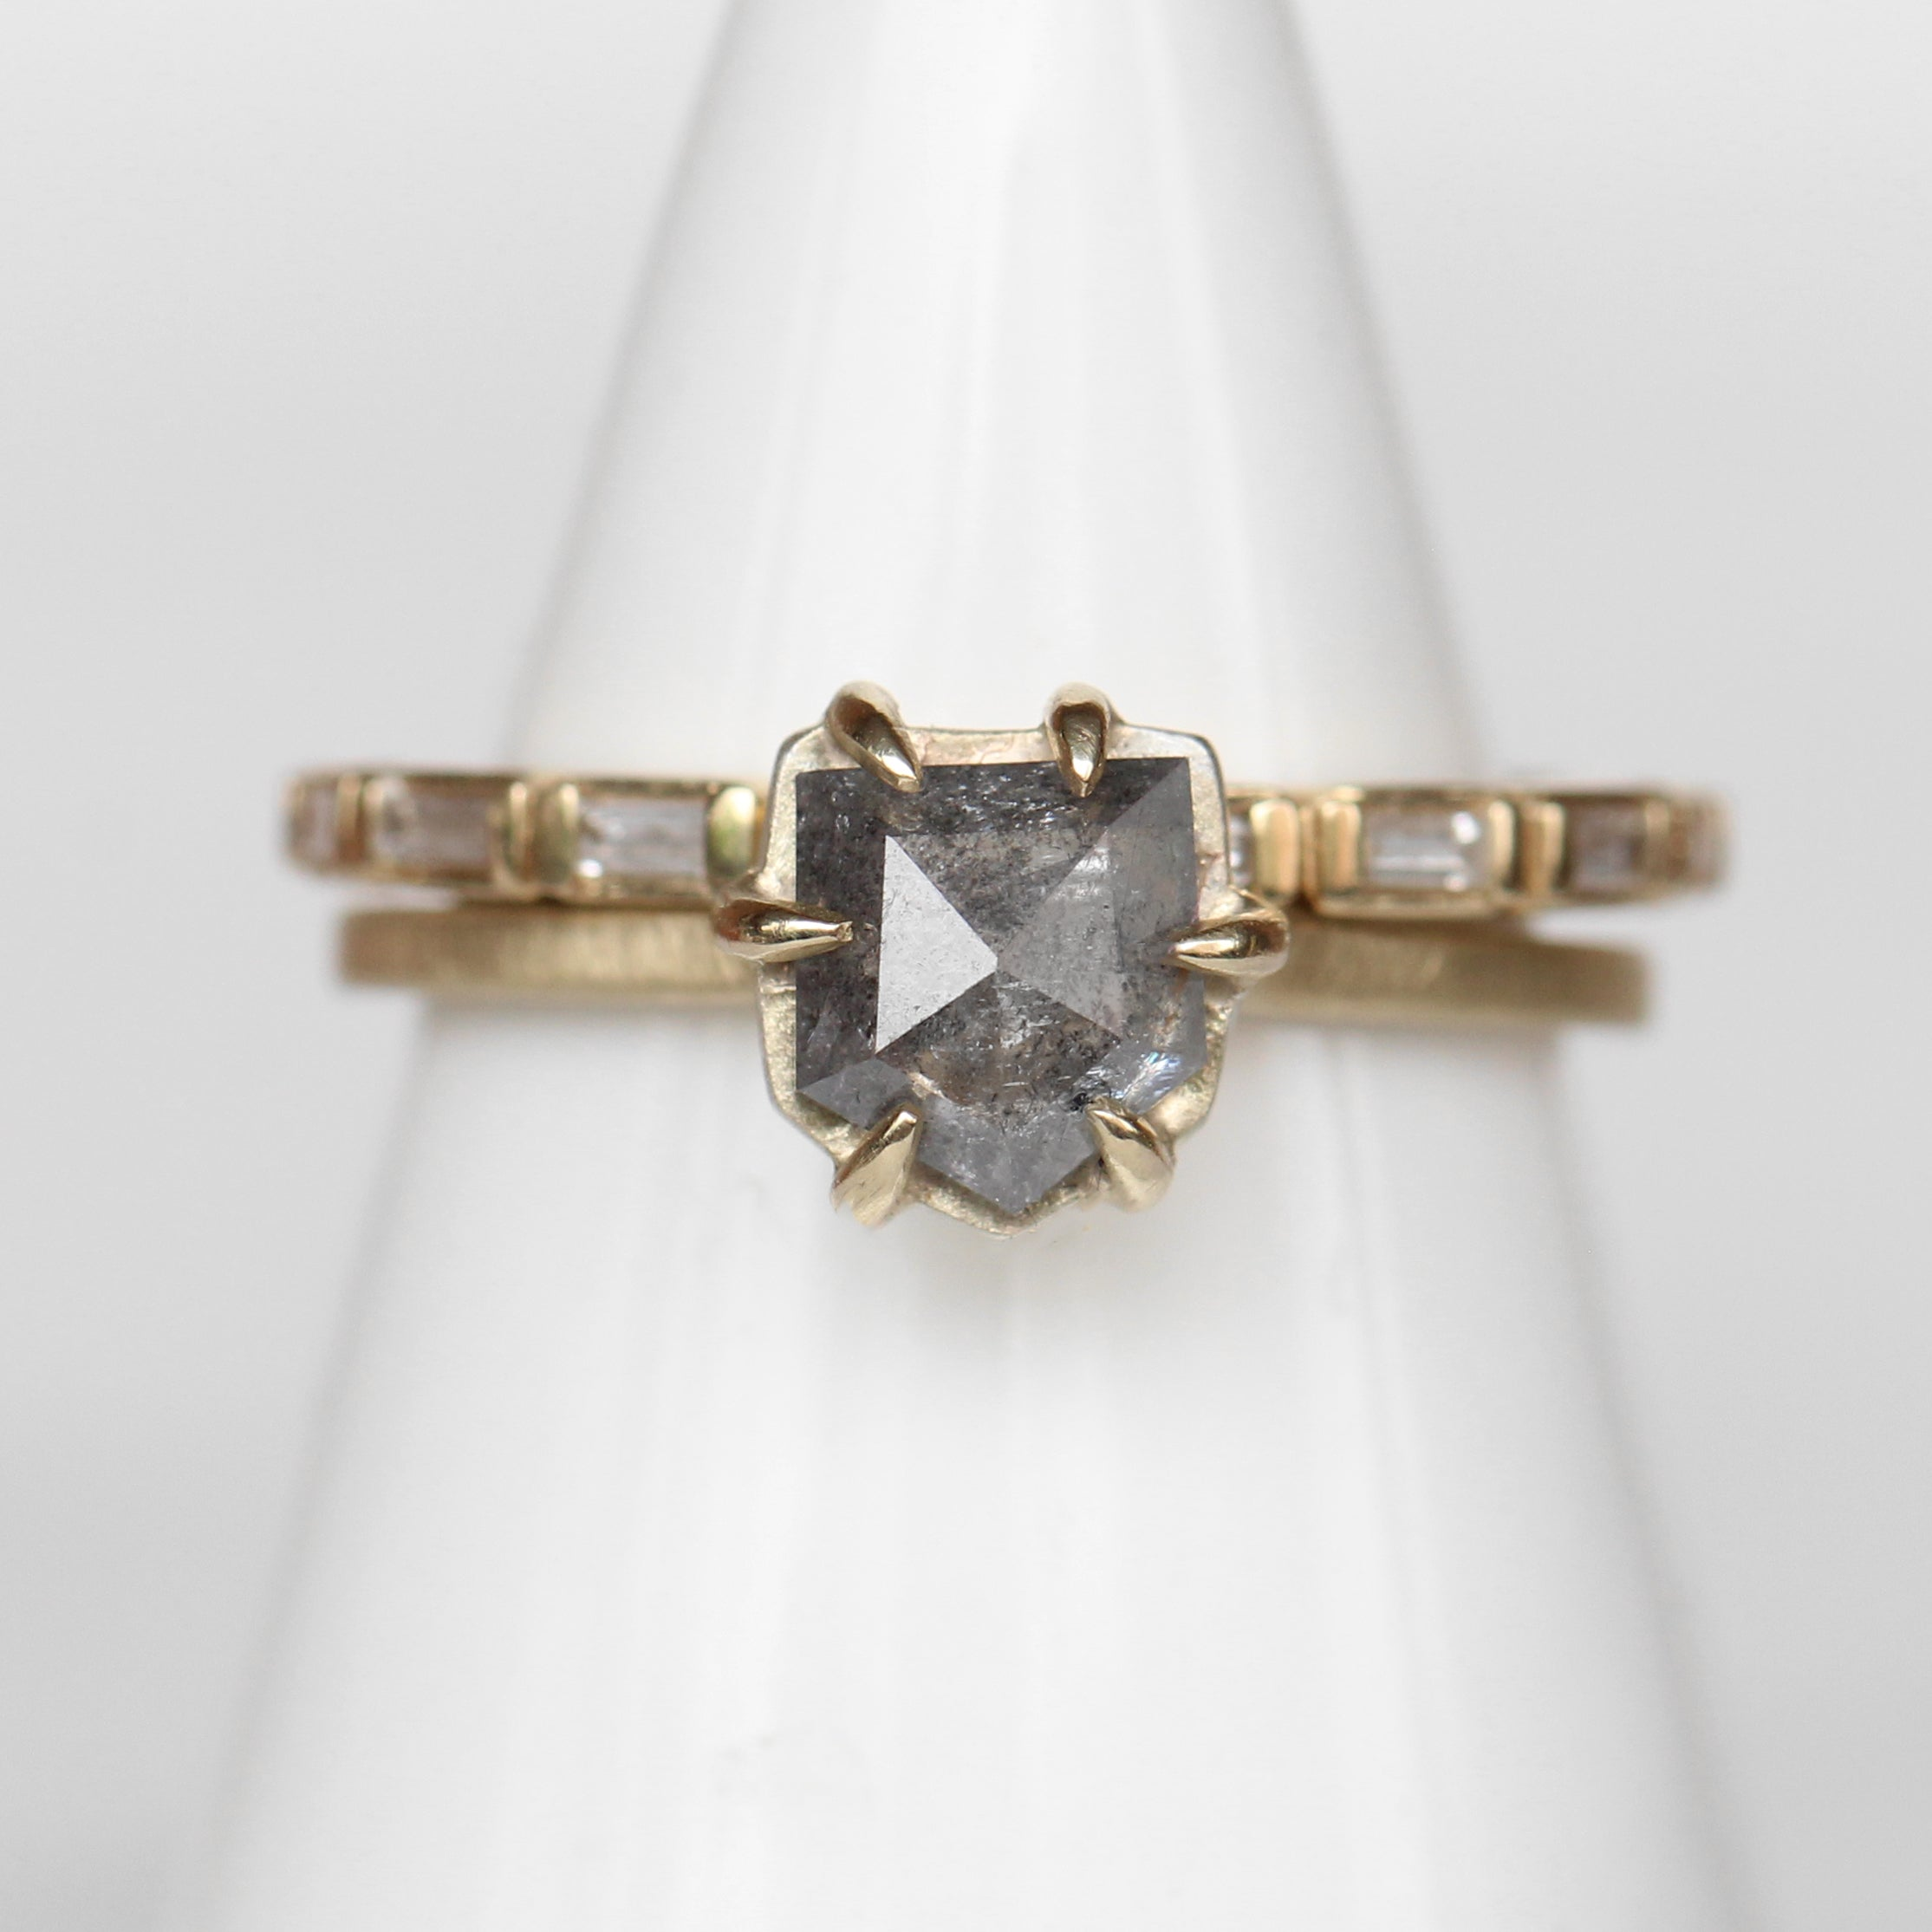 Raven Ring with celestial pentagon diamond in 14k yellow gold - ready to size and ship - Salt & Pepper Celestial Diamond Engagement Rings and Wedding Bands  by Midwinter Co.